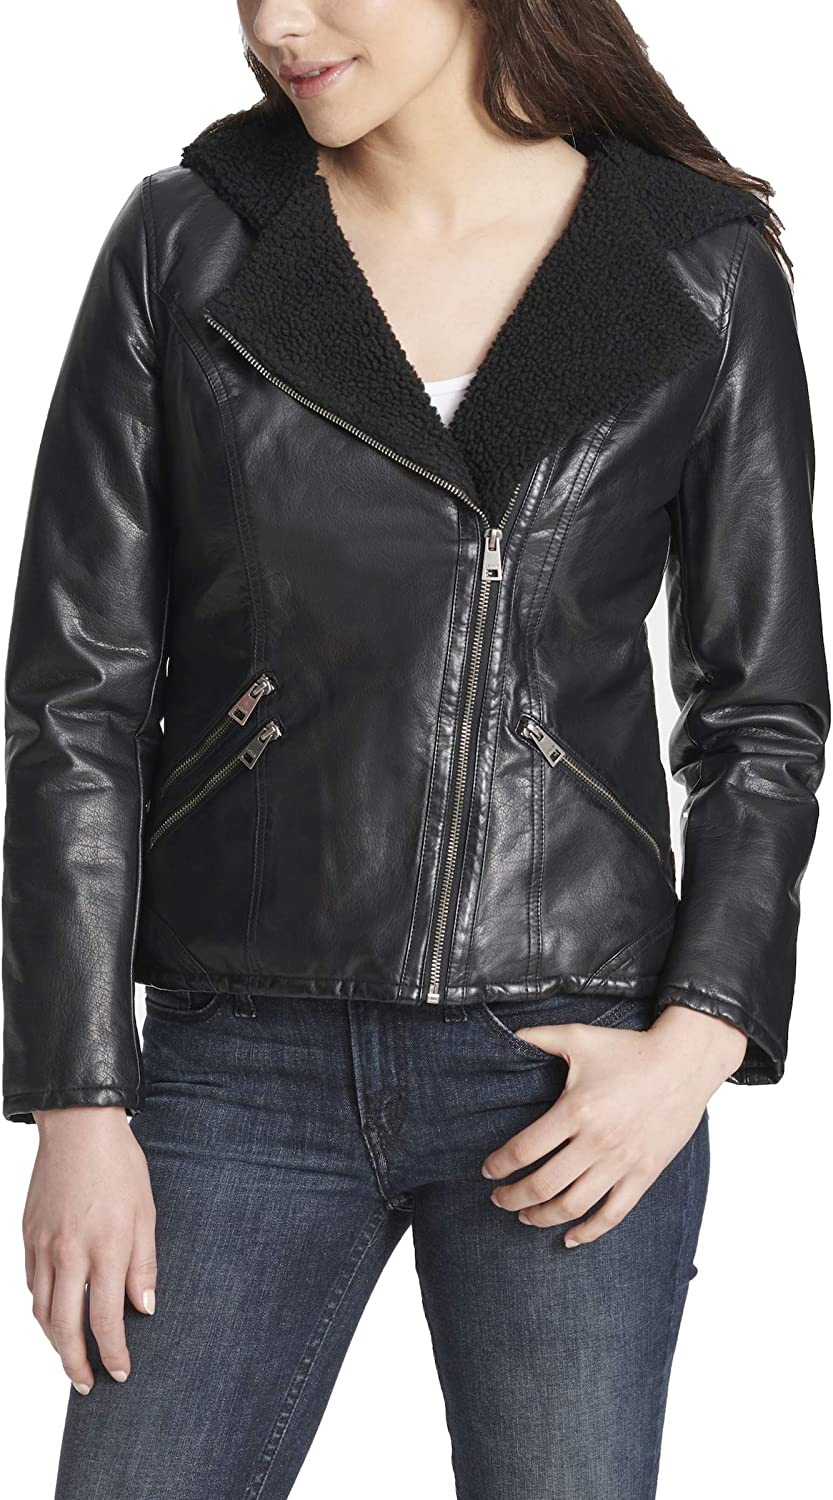 Levi's Women's Asymetrical Sherpa Lined Faux Leather Jacket (Standard & Plus Sizes)